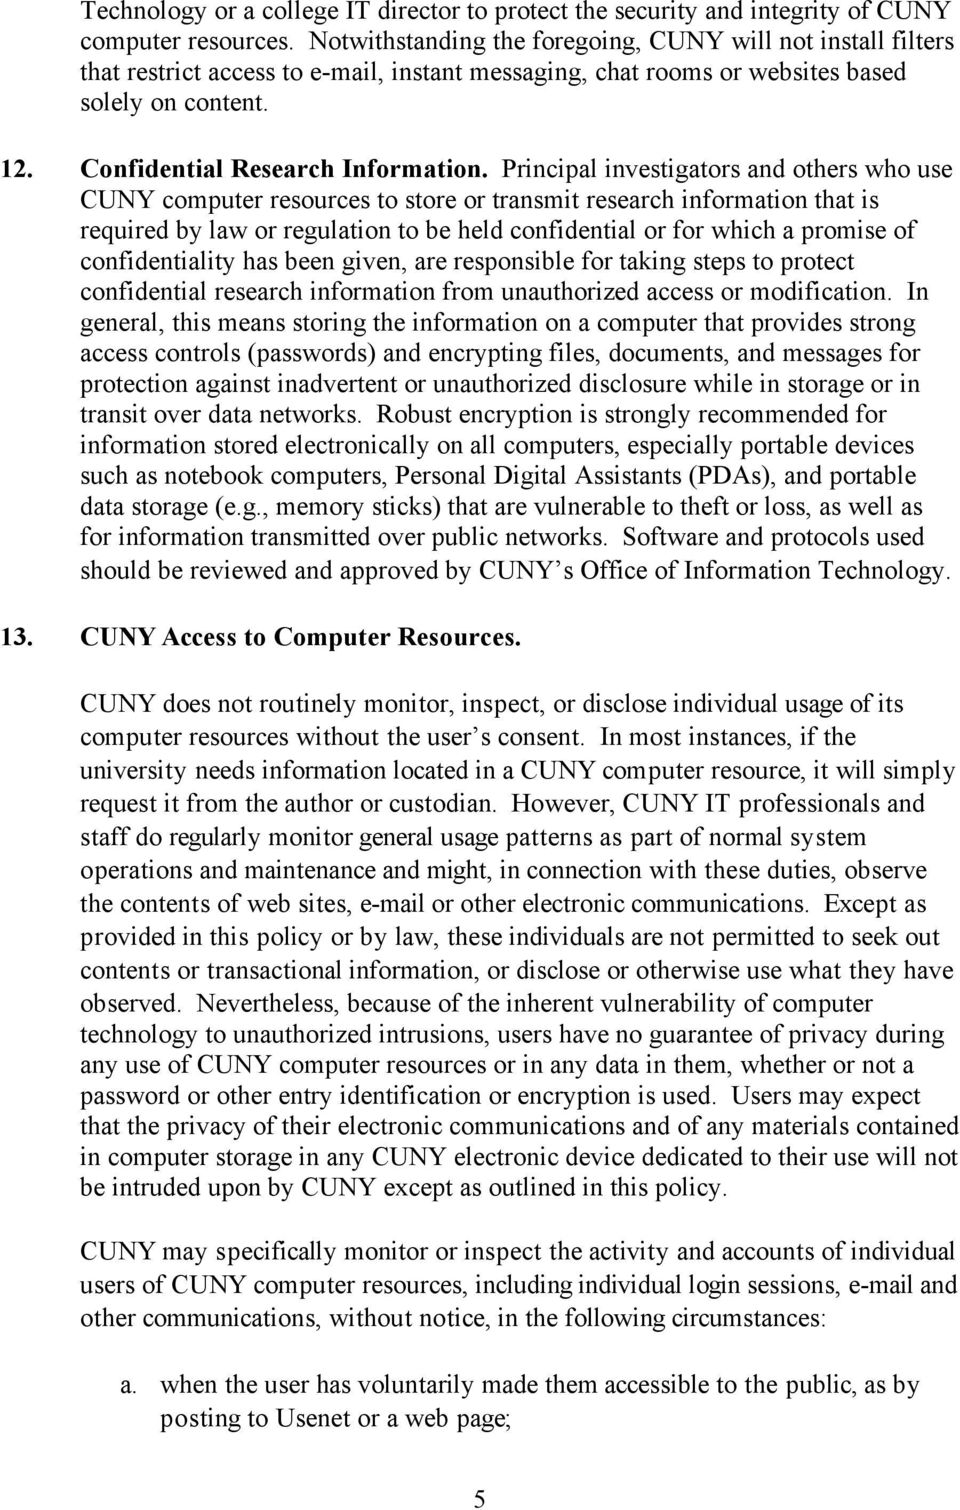 Principal investigators and others who use CUNY computer resources to store or transmit research information that is required by law or regulation to be held confidential or for which a promise of